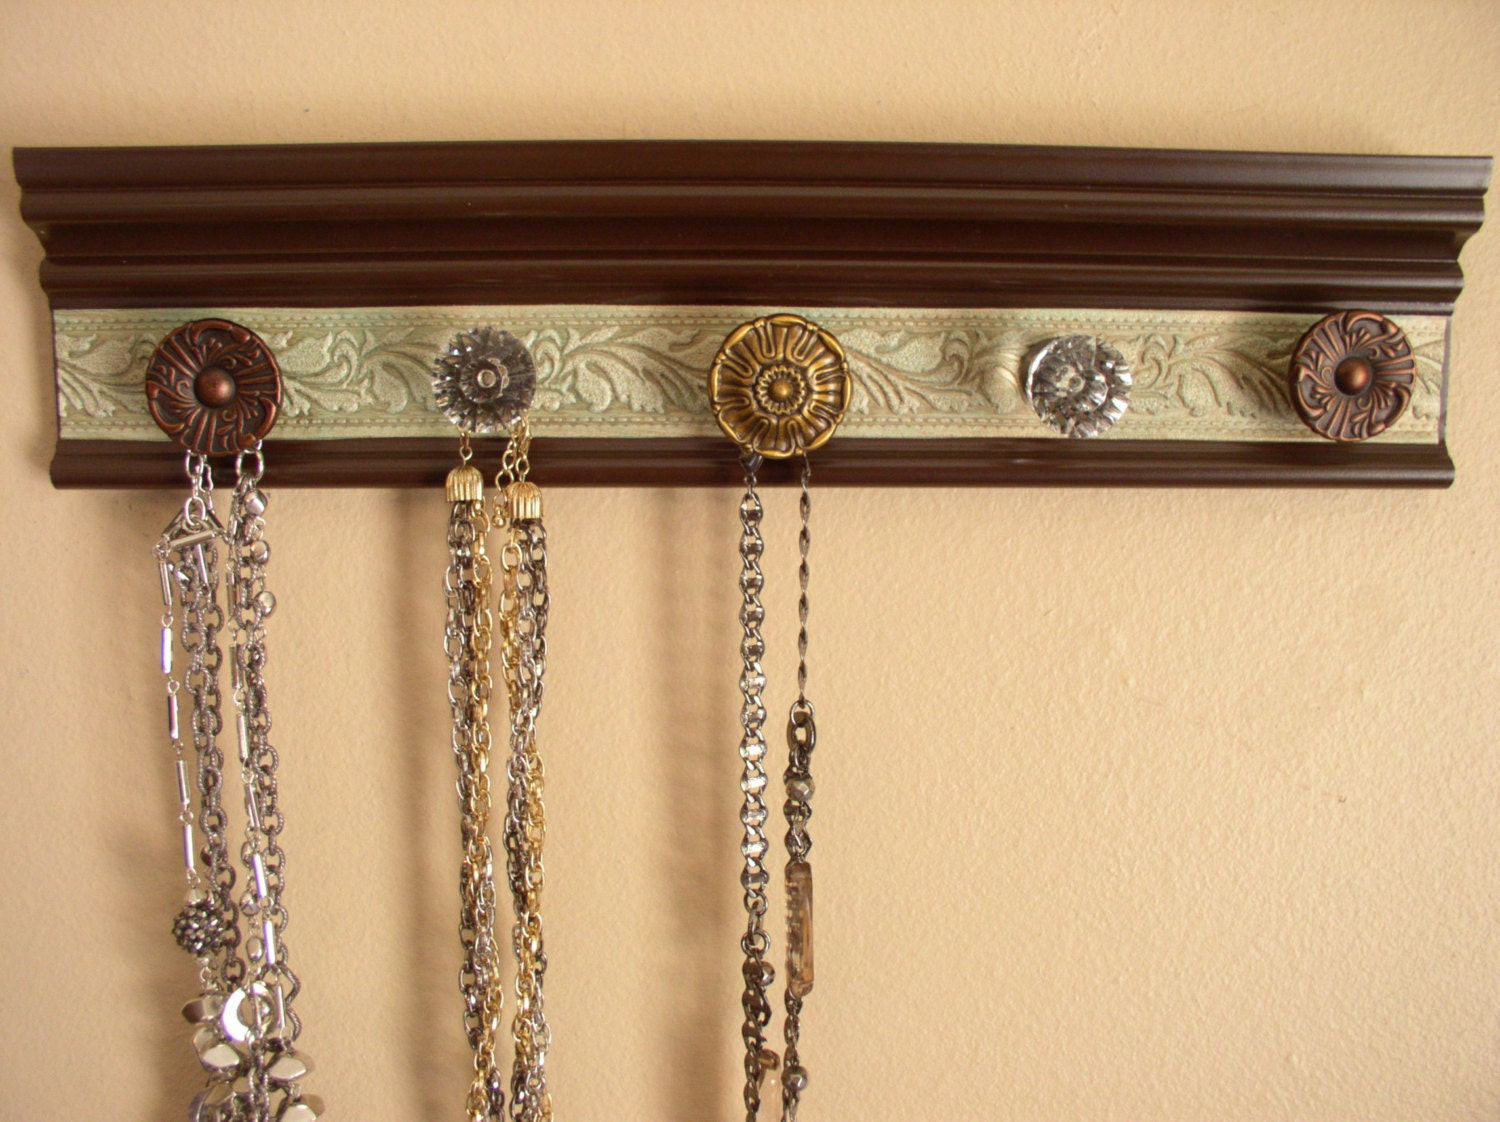 Jewelry Storage This Wall Hanging Necklace Organizer By